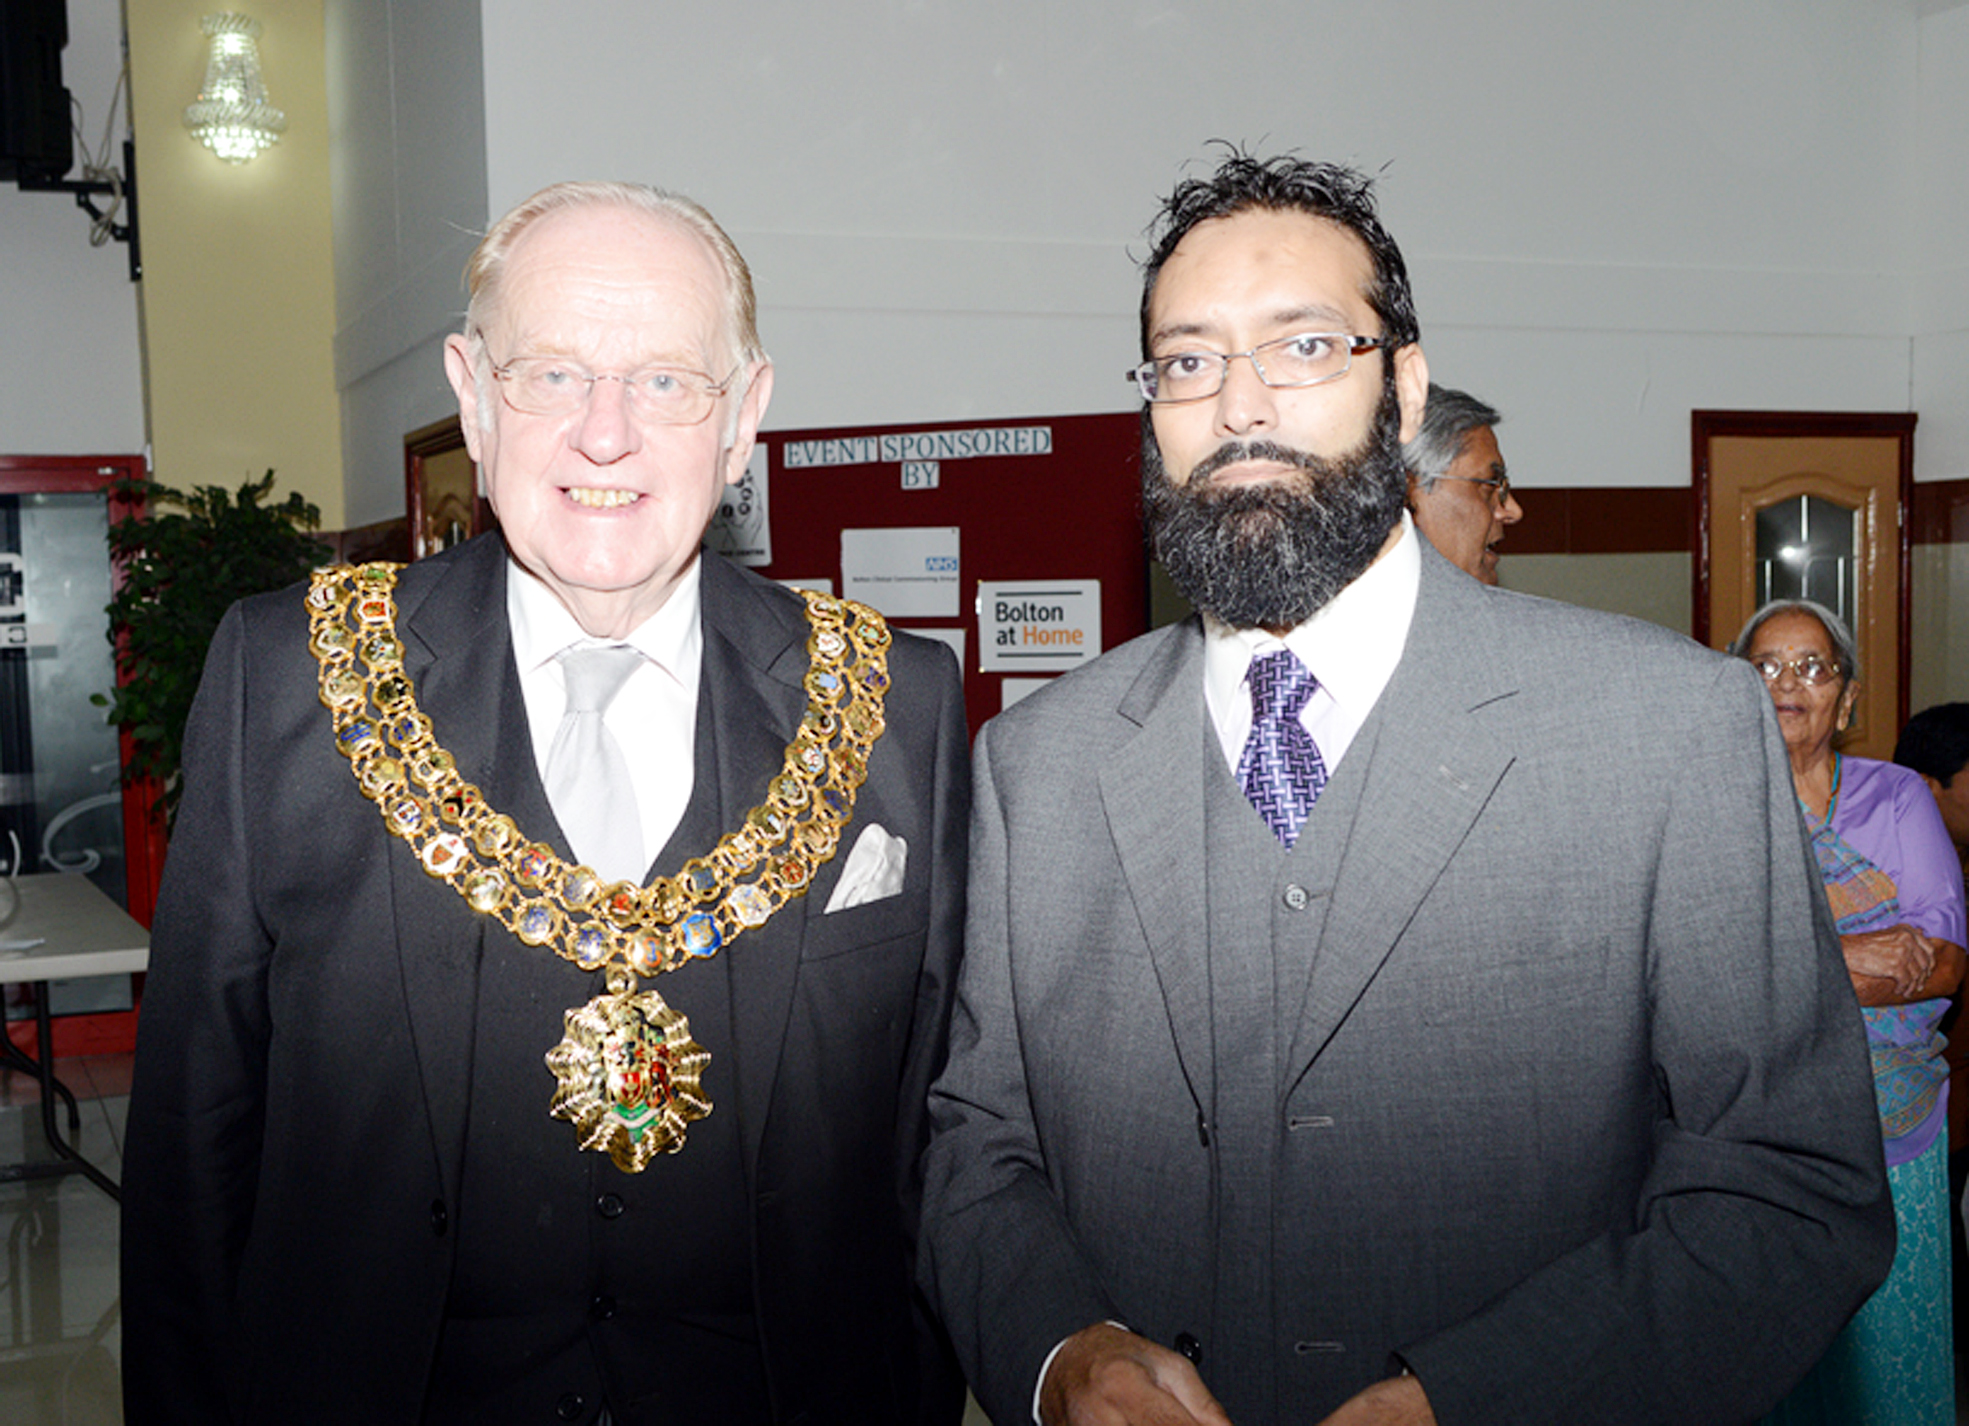 The Mayor of Bolton, Cllr Colin Shaw, with Anis Haroon, chairman of The Asian Elders Resource Centre